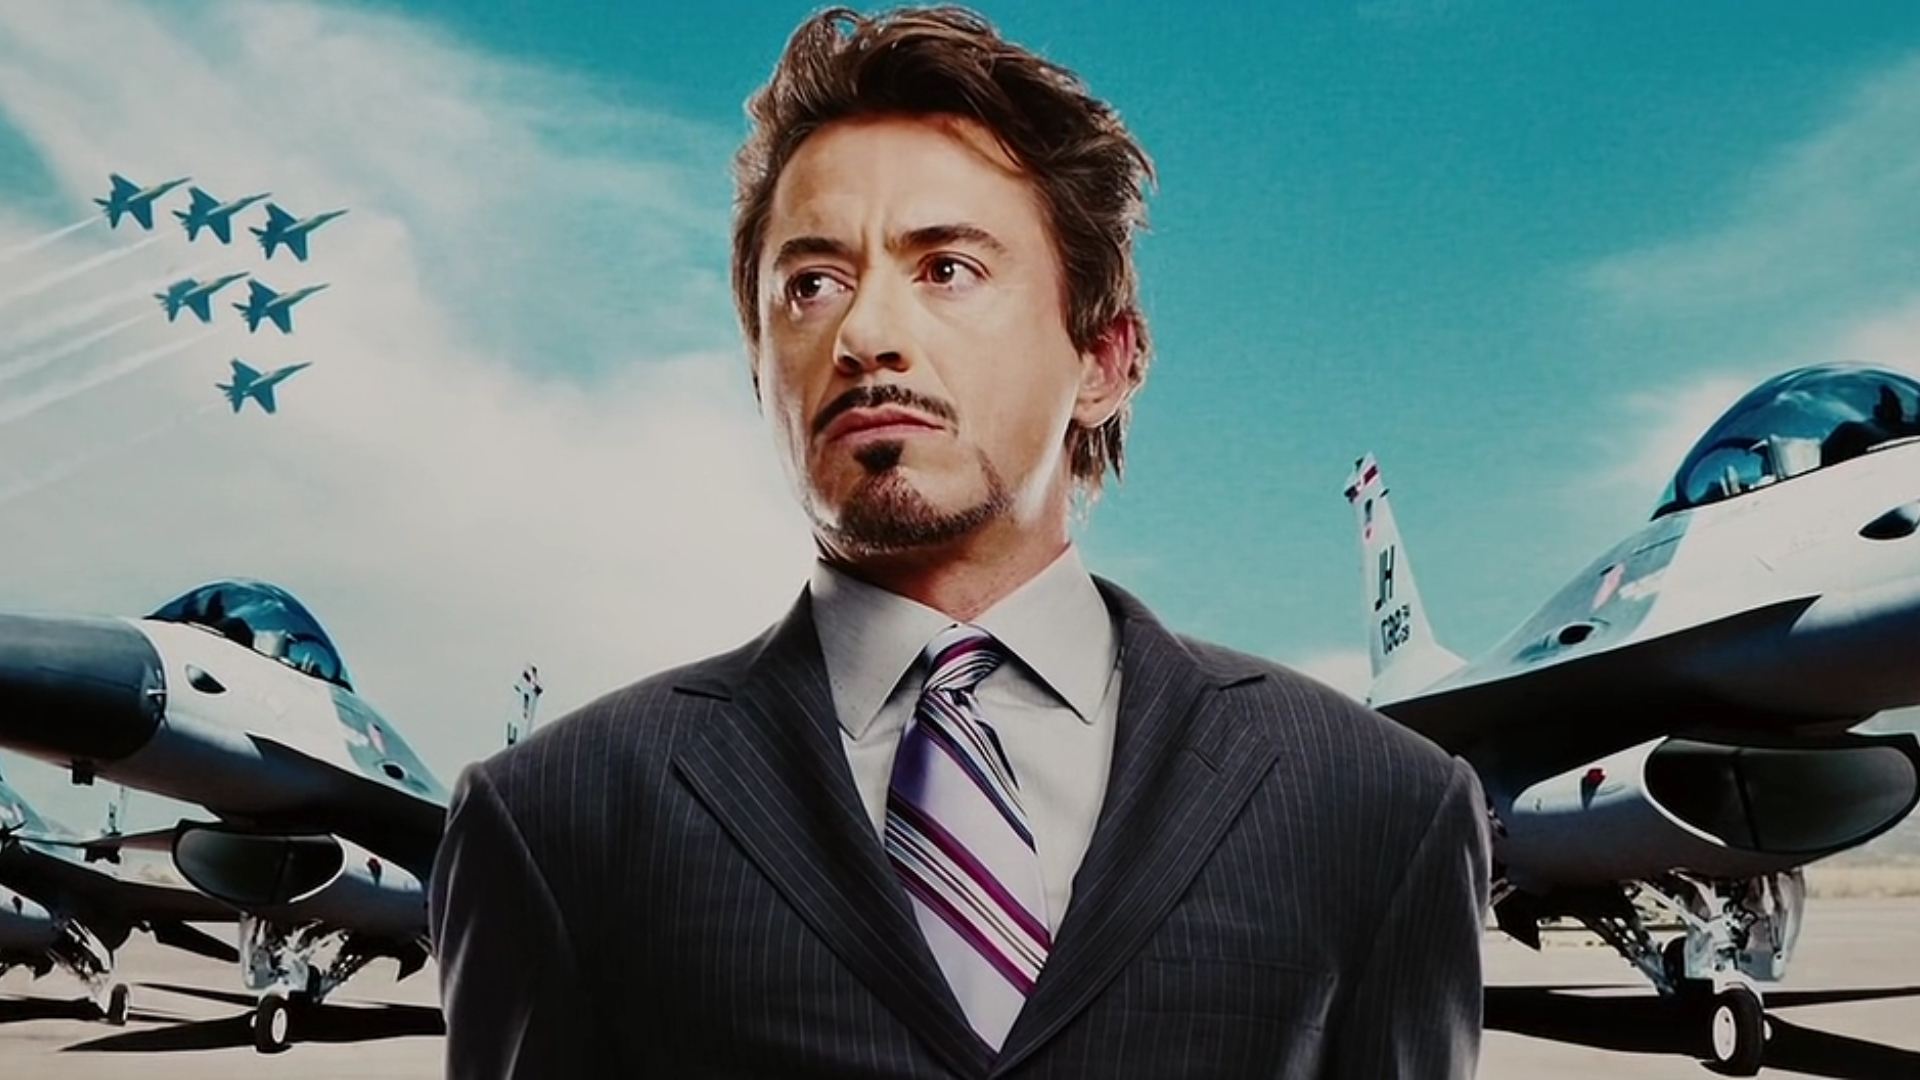 iron man Robert Downey HD Wallpaper